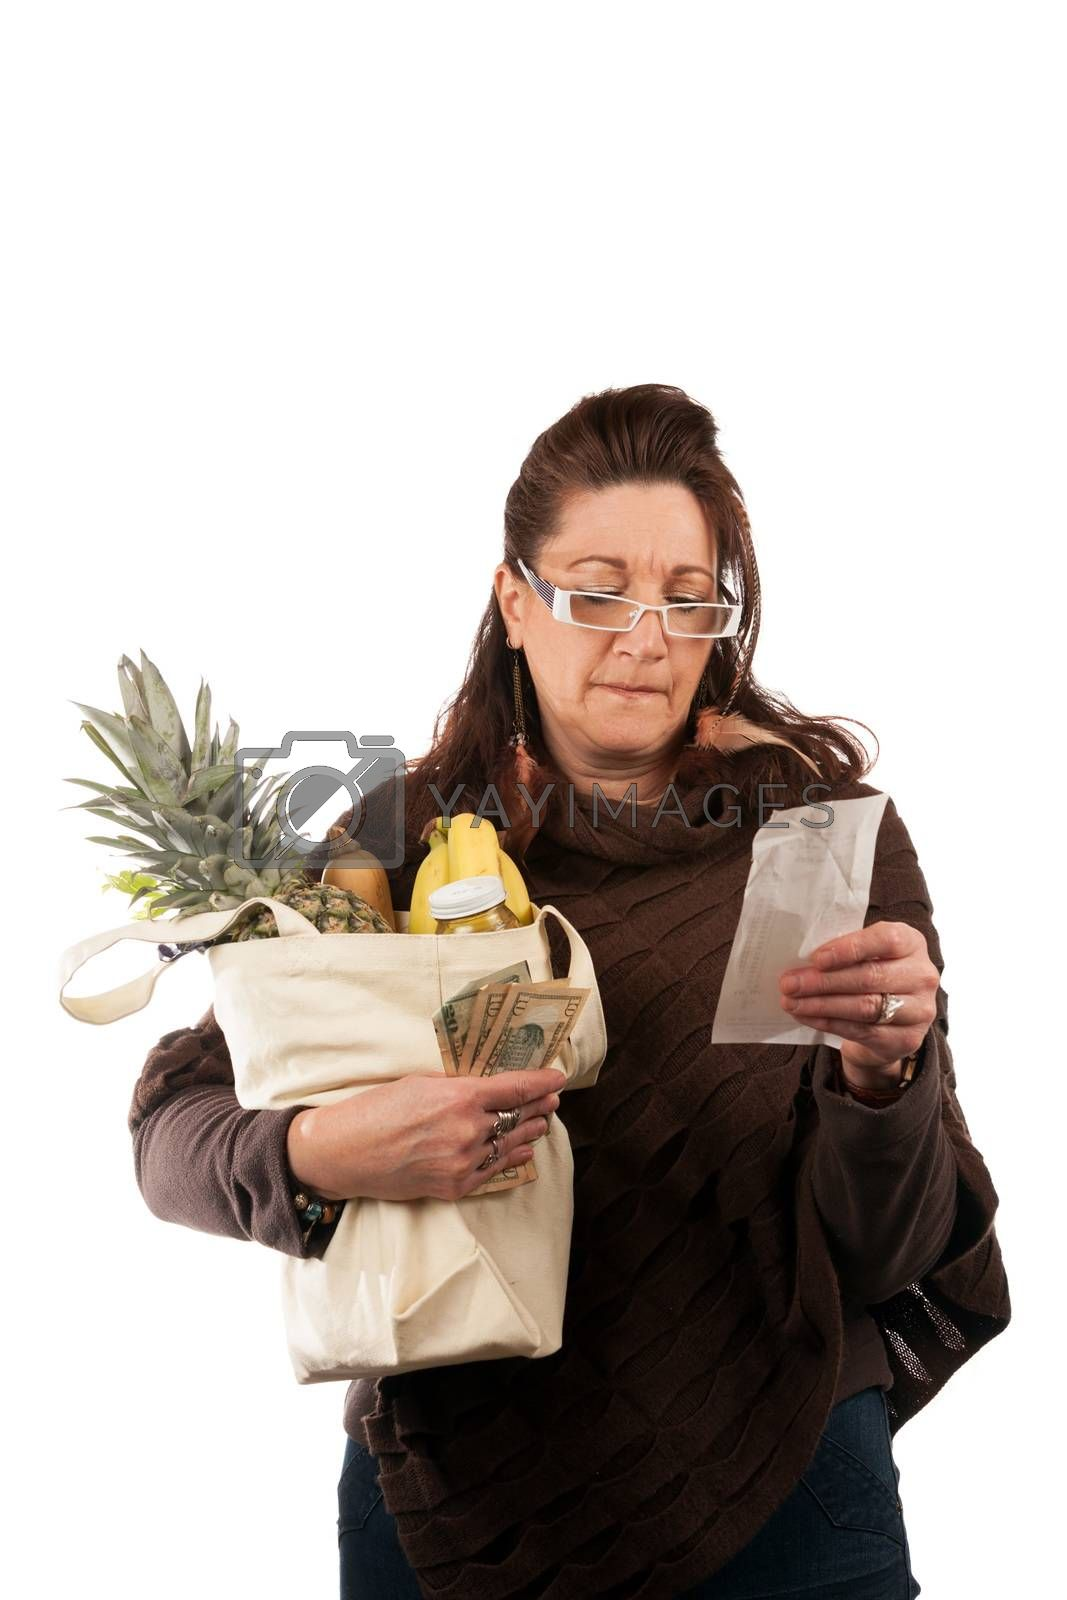 Middle aged woman carefully examining her register receipt reviewing her grocery shopping bill.